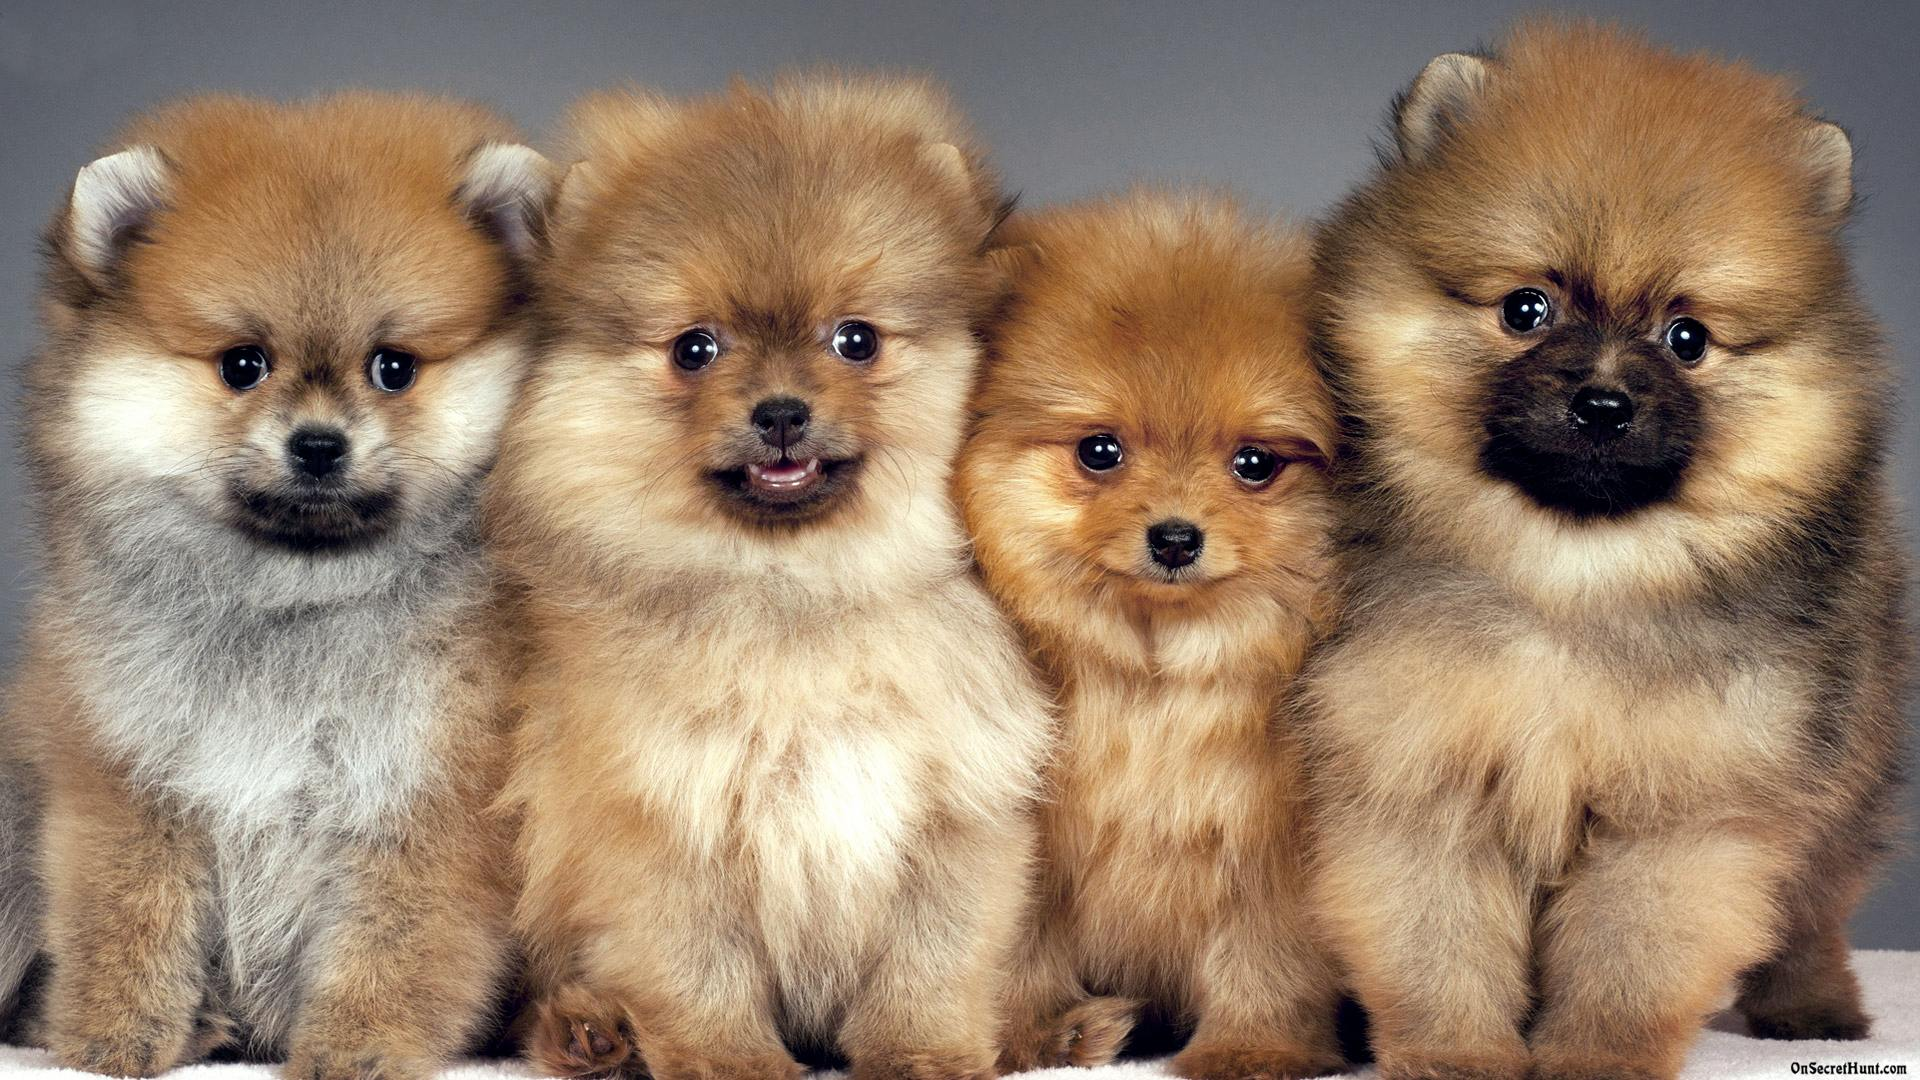 Cute Little Puppies Wallpapers Android Apps On Google Play 1920x1080